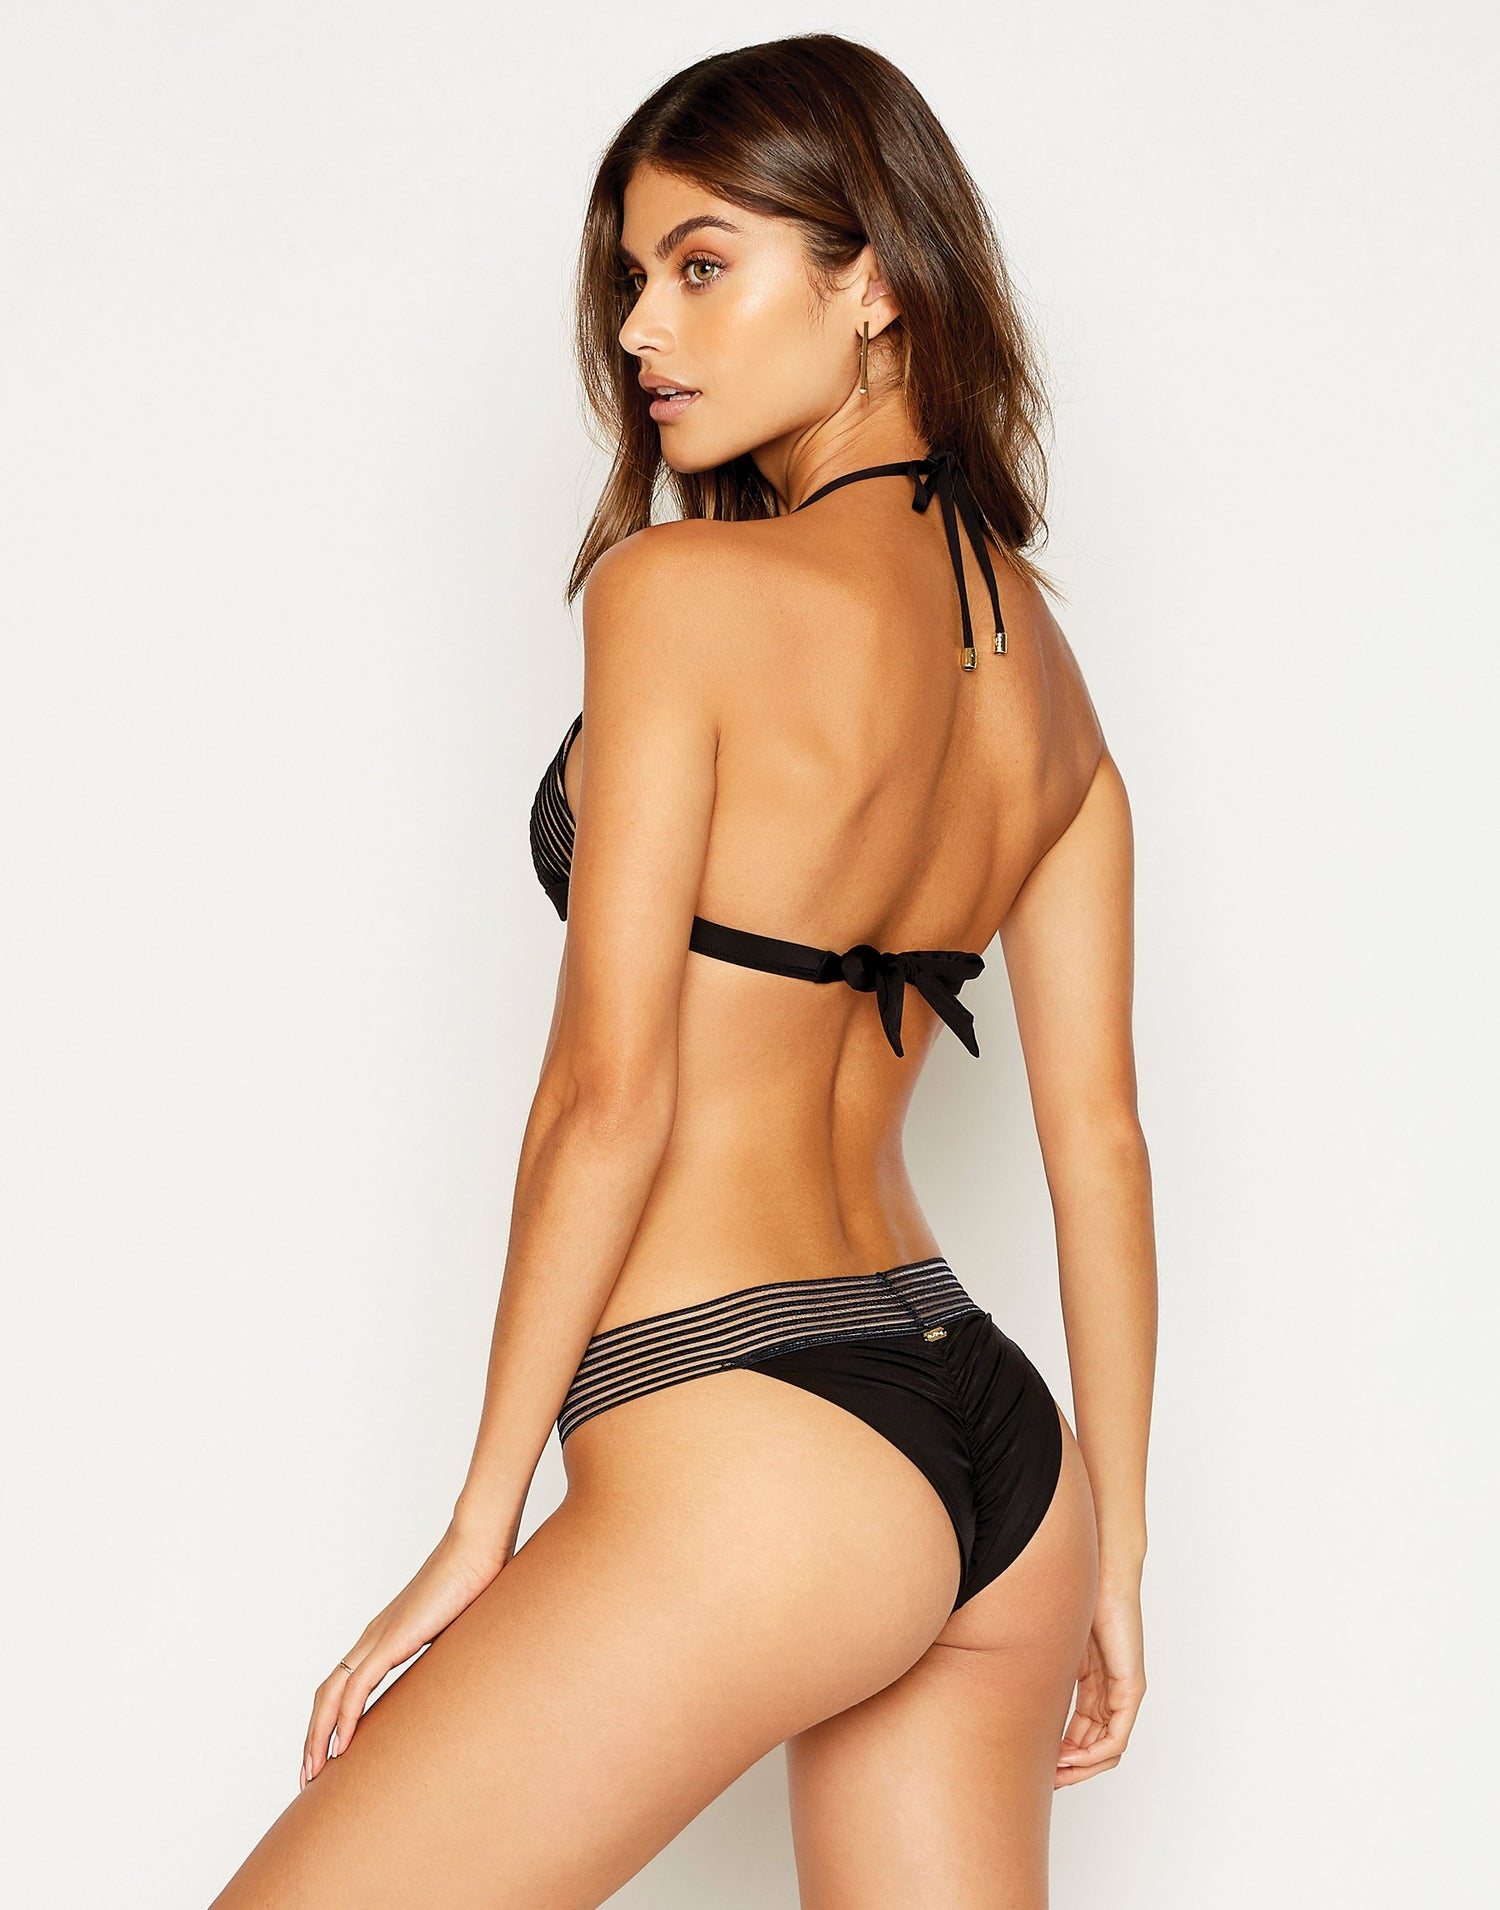 Sheer Addiction Triangle Bikini Top in Black with Nude Lining - back view